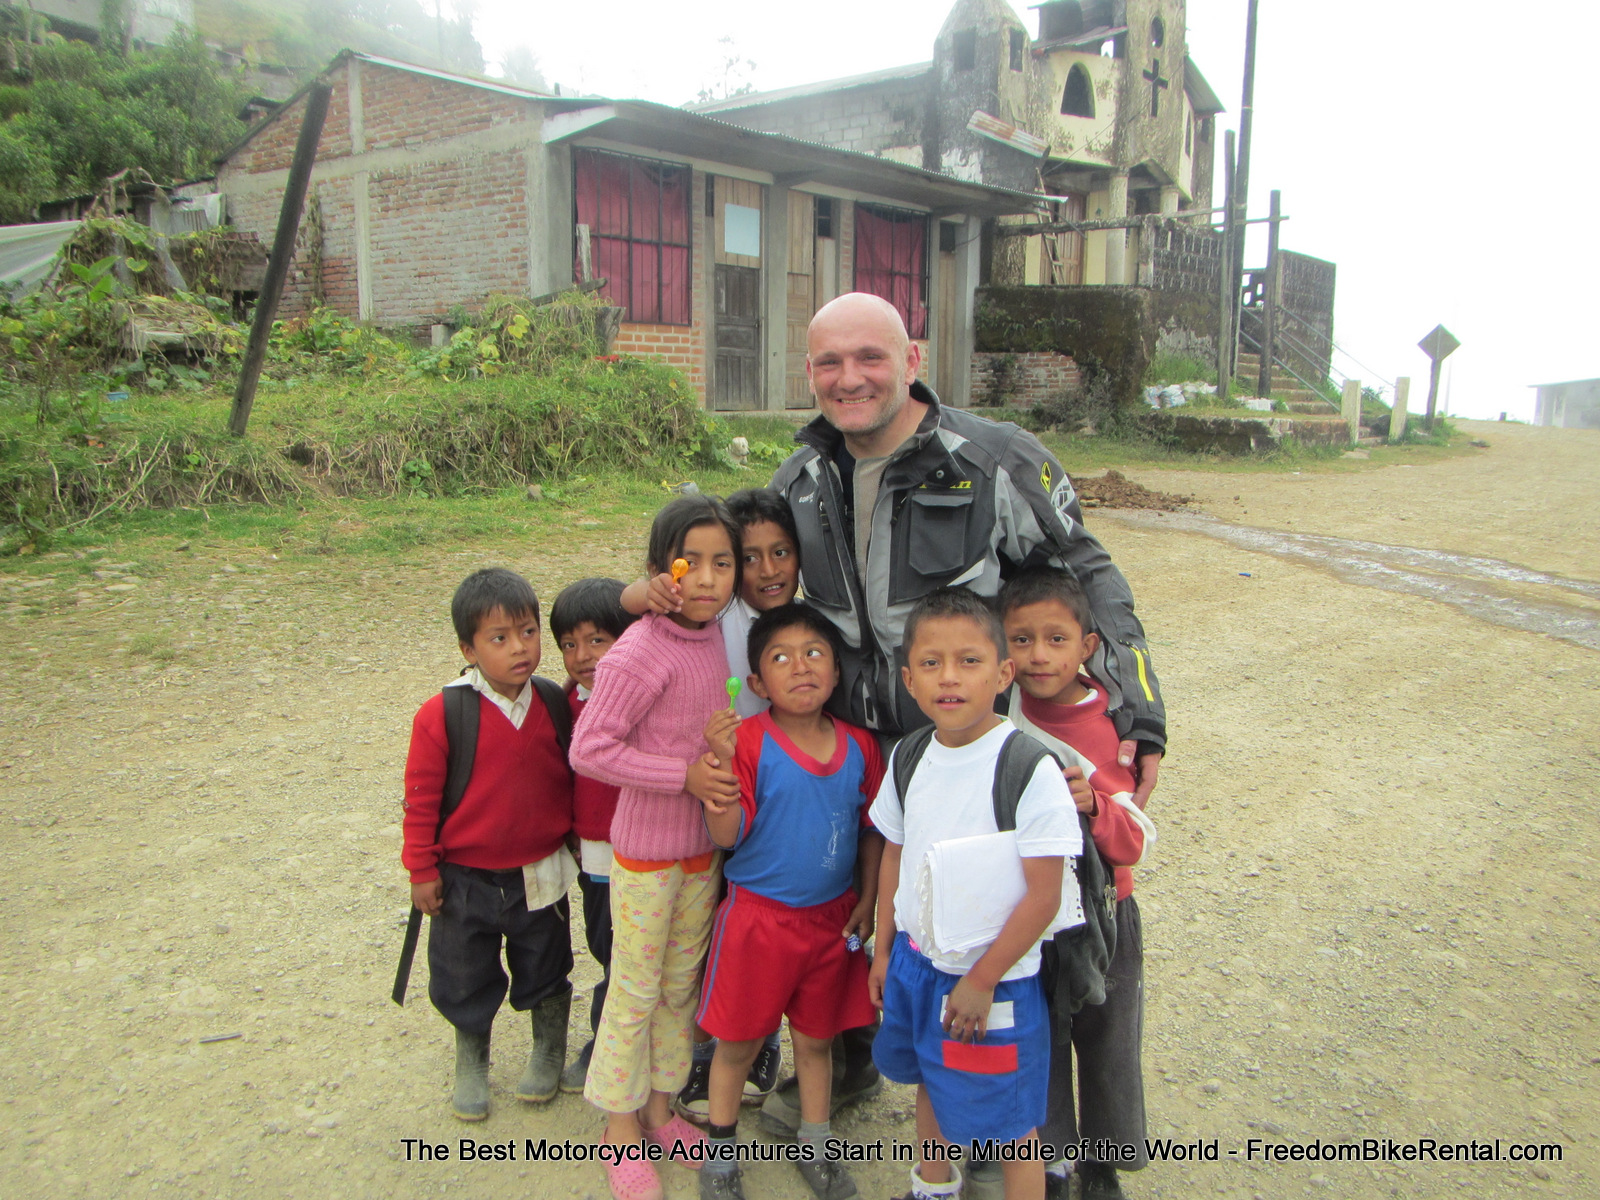 Sylvain_with_kids_in_Palma_Bolivar